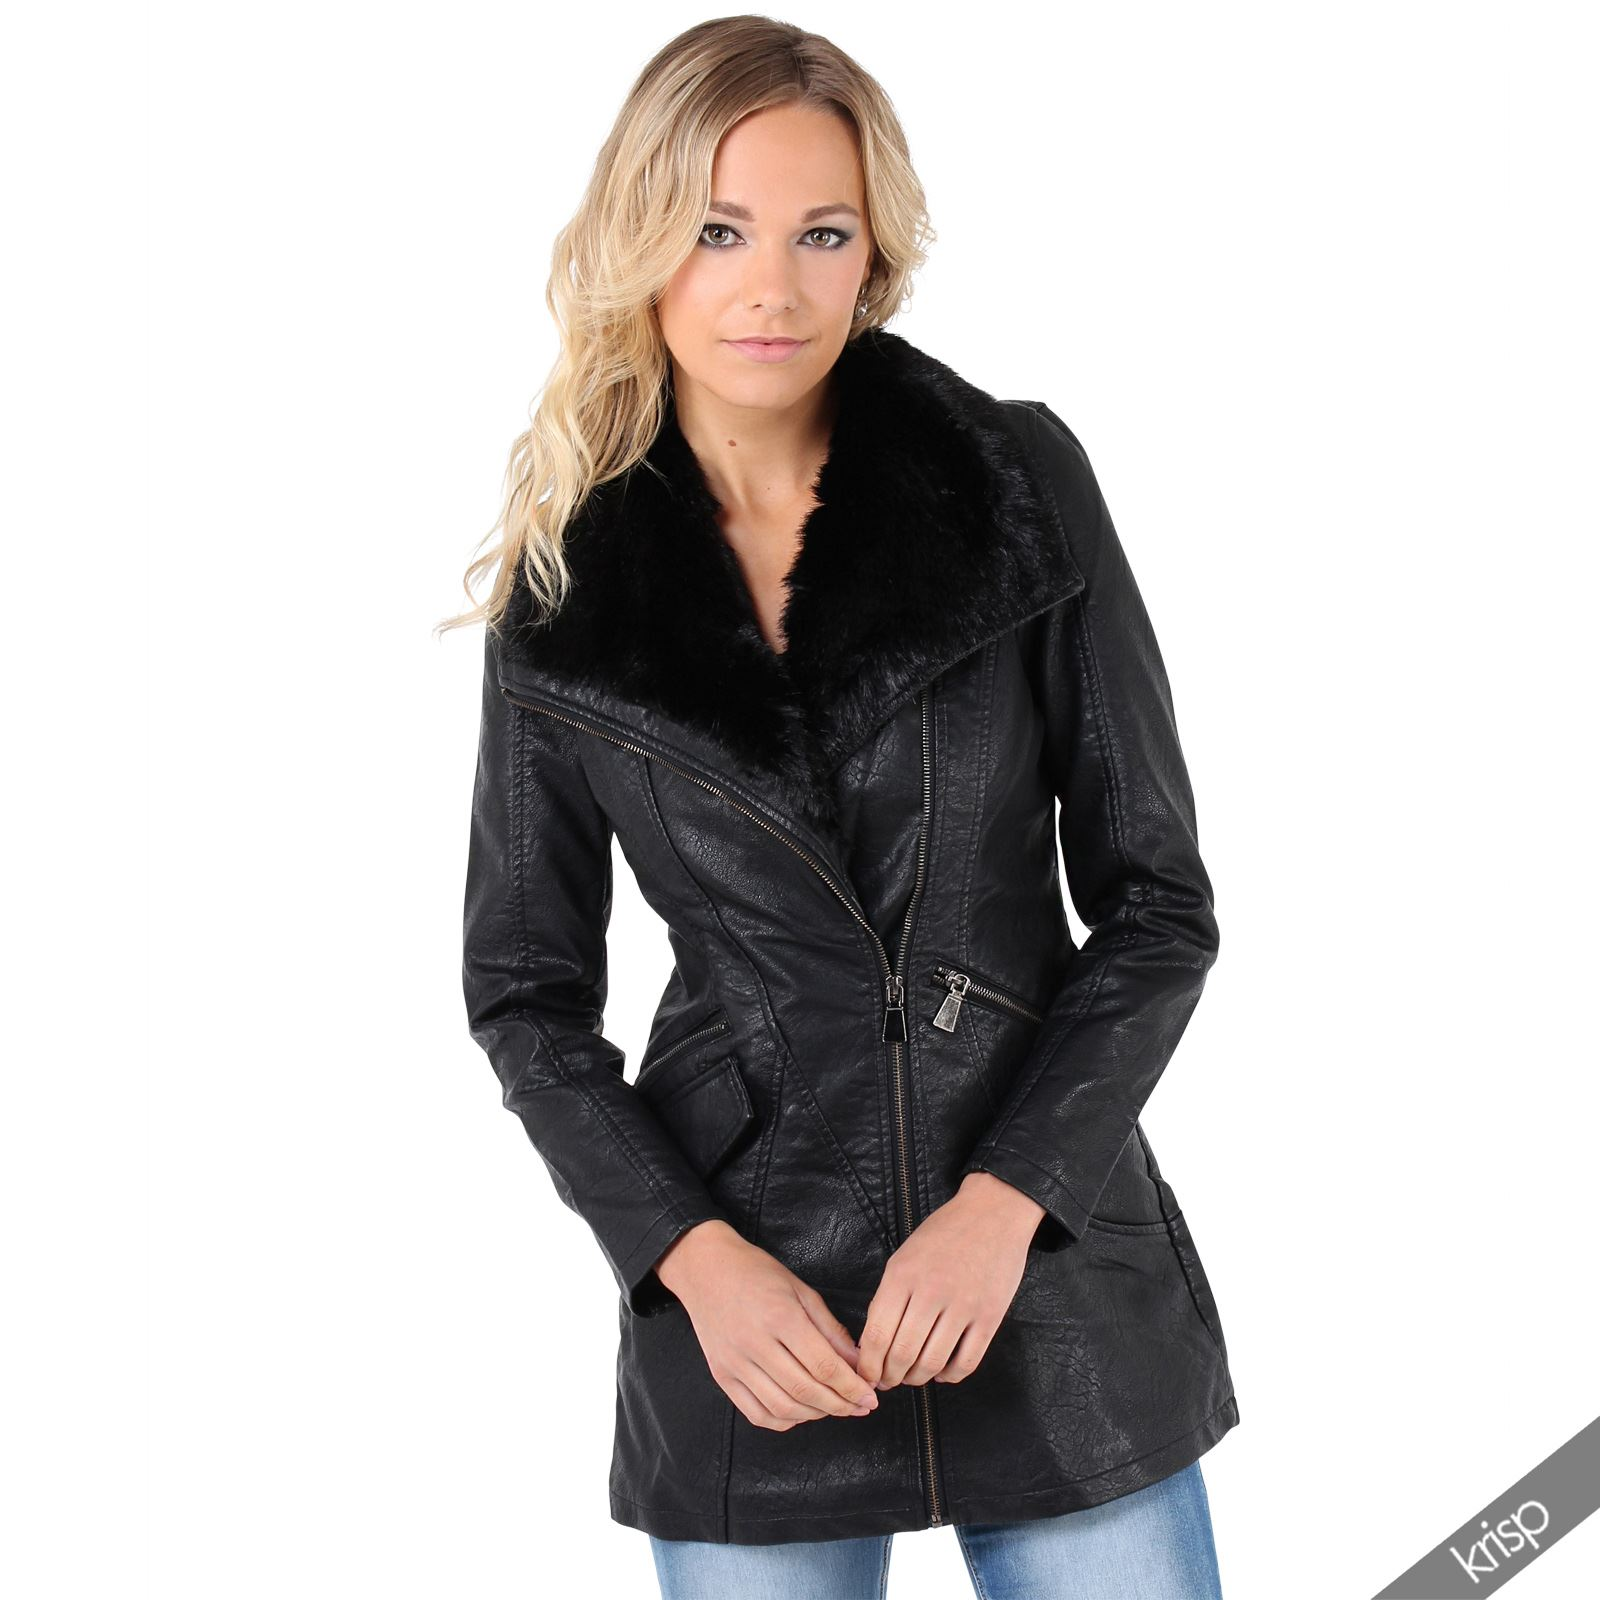 damen fellkragen lederjacke biker jacke parka. Black Bedroom Furniture Sets. Home Design Ideas